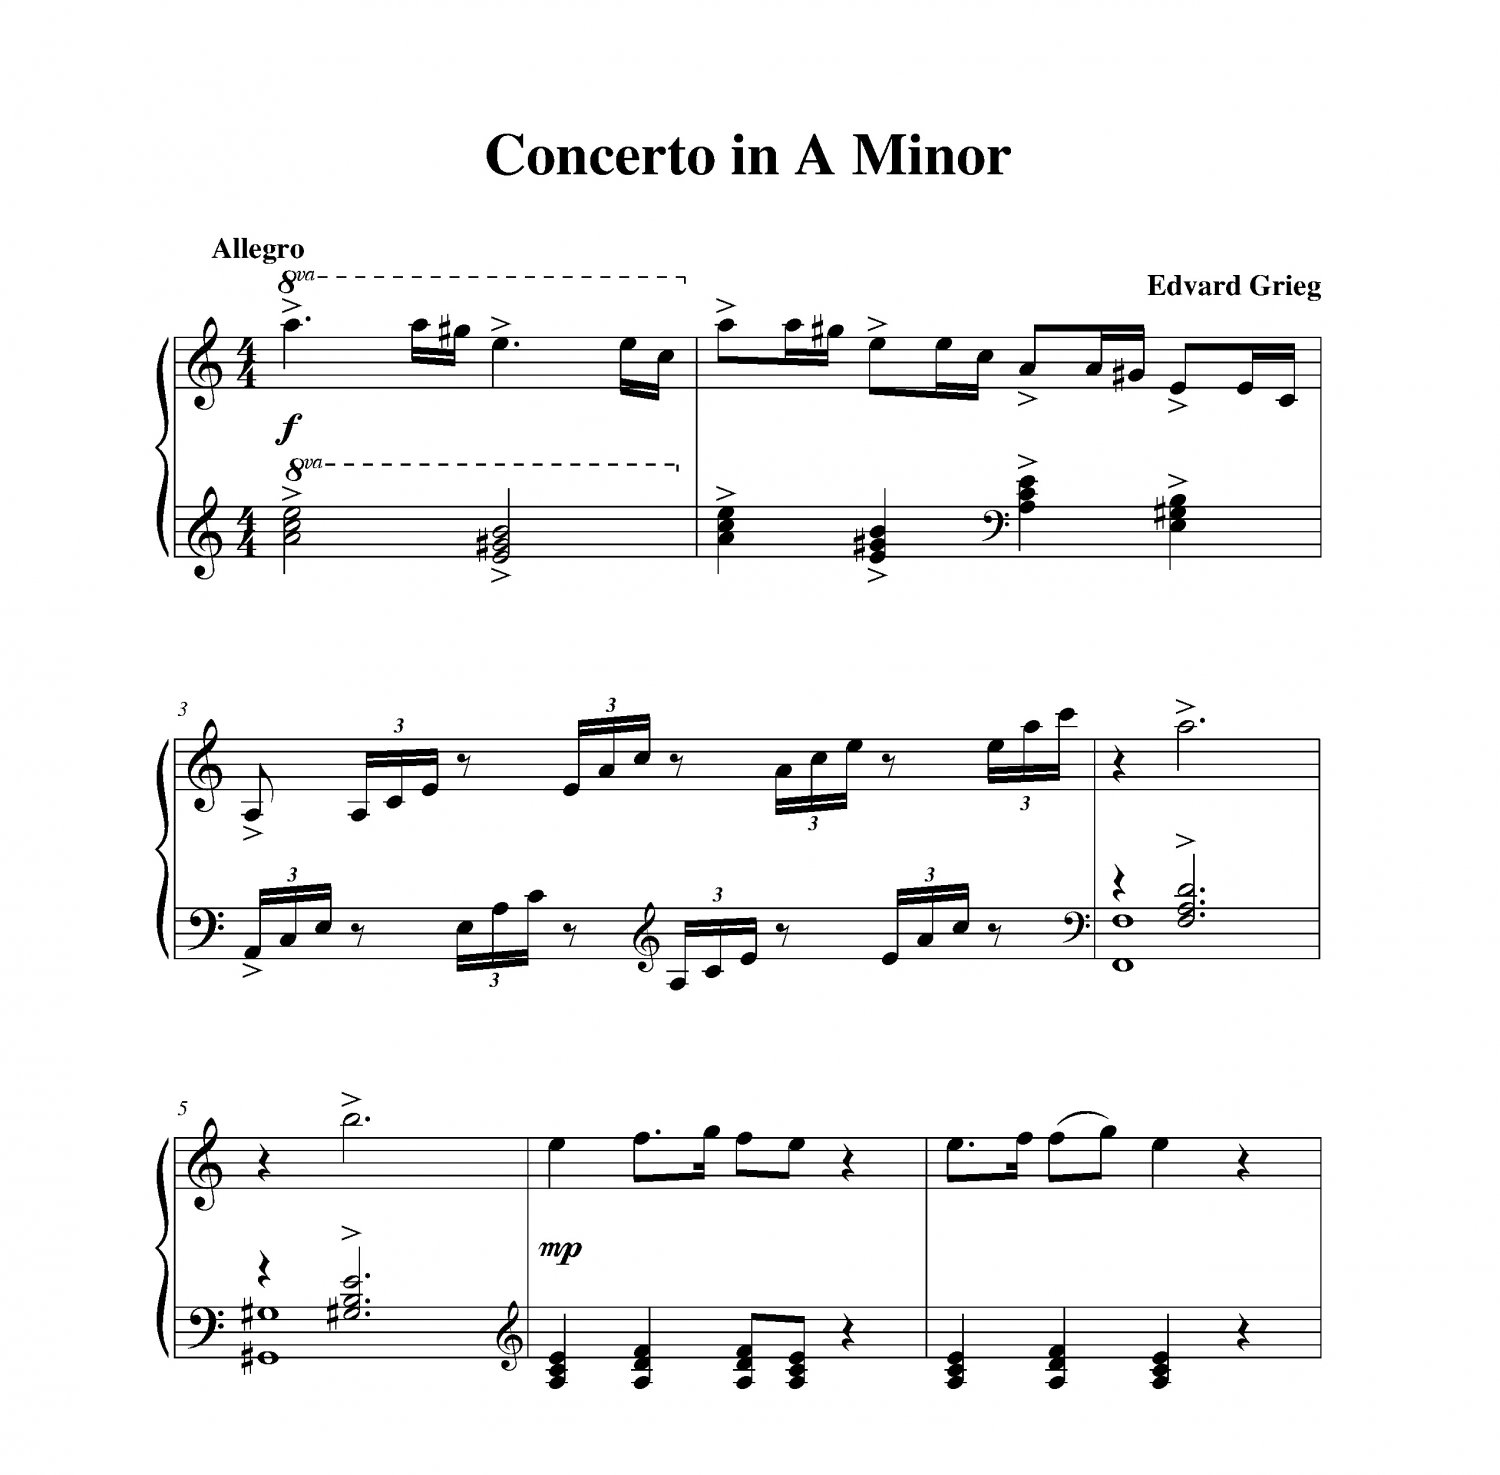 Grieg - Concerto in A Minor Themes